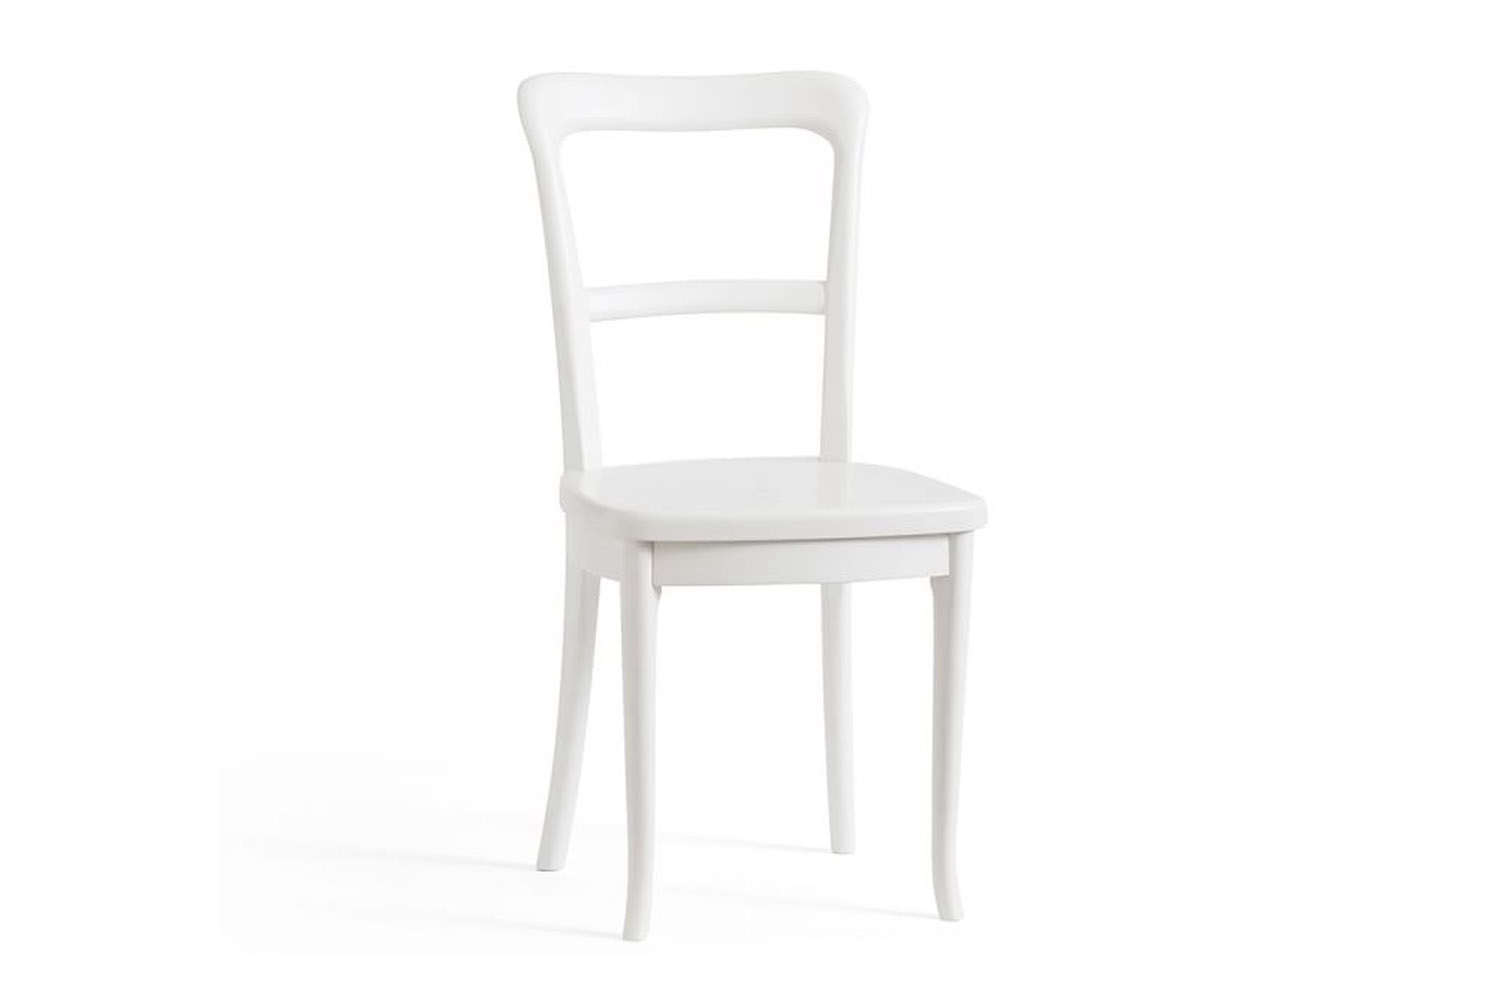 the cline bistro dining chair is \$\149 at pottery barn. 13